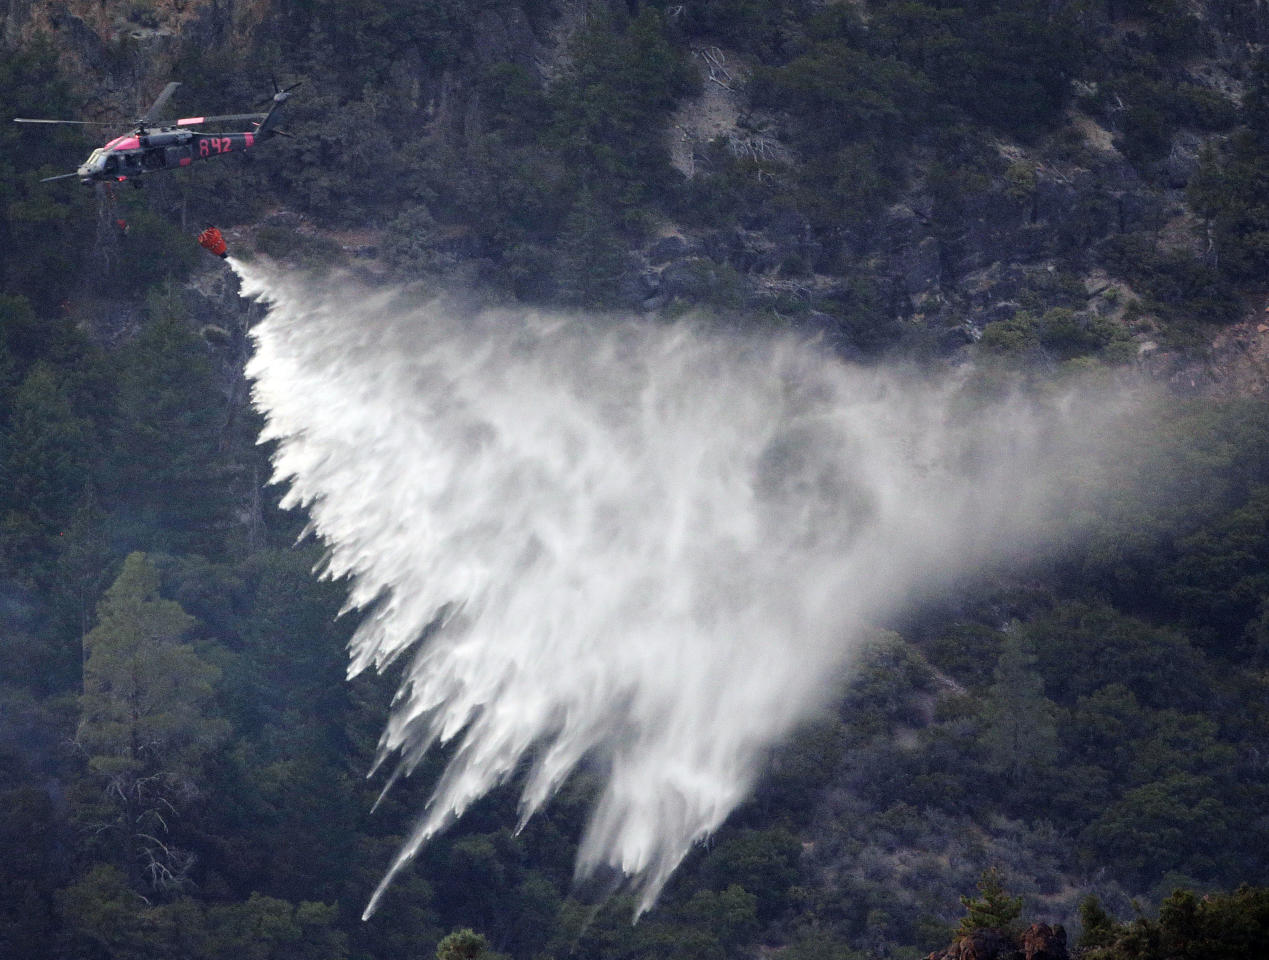 Fire crews drop water unto the Ponderosa Fire from a helicopter near Mineral, Calif., Thursday, Aug. 23, 2012. The Ponderosa Fire was 57 percent contained, with full containment expected early next week. The blaze threatened 900 other homes Thursday as it burned a new front to the south. More than 2,500 firefighters are battling the wildfire, which grew to 44 square miles in the hills about 25 miles southeast of Redding. (AP Photo/Marcio Jose Sanchez)